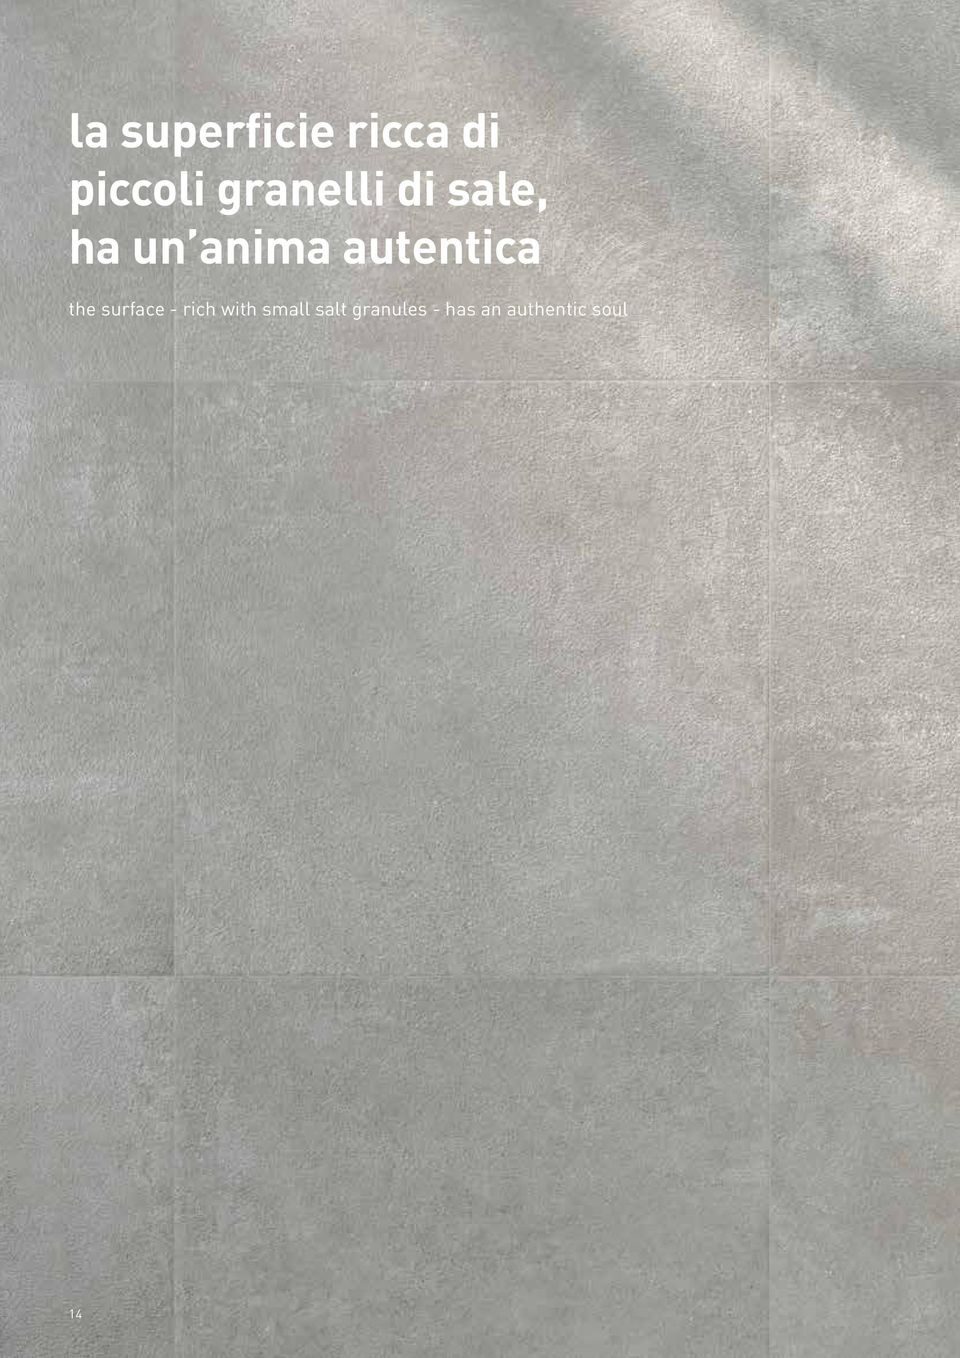 autentica the surface - rich with